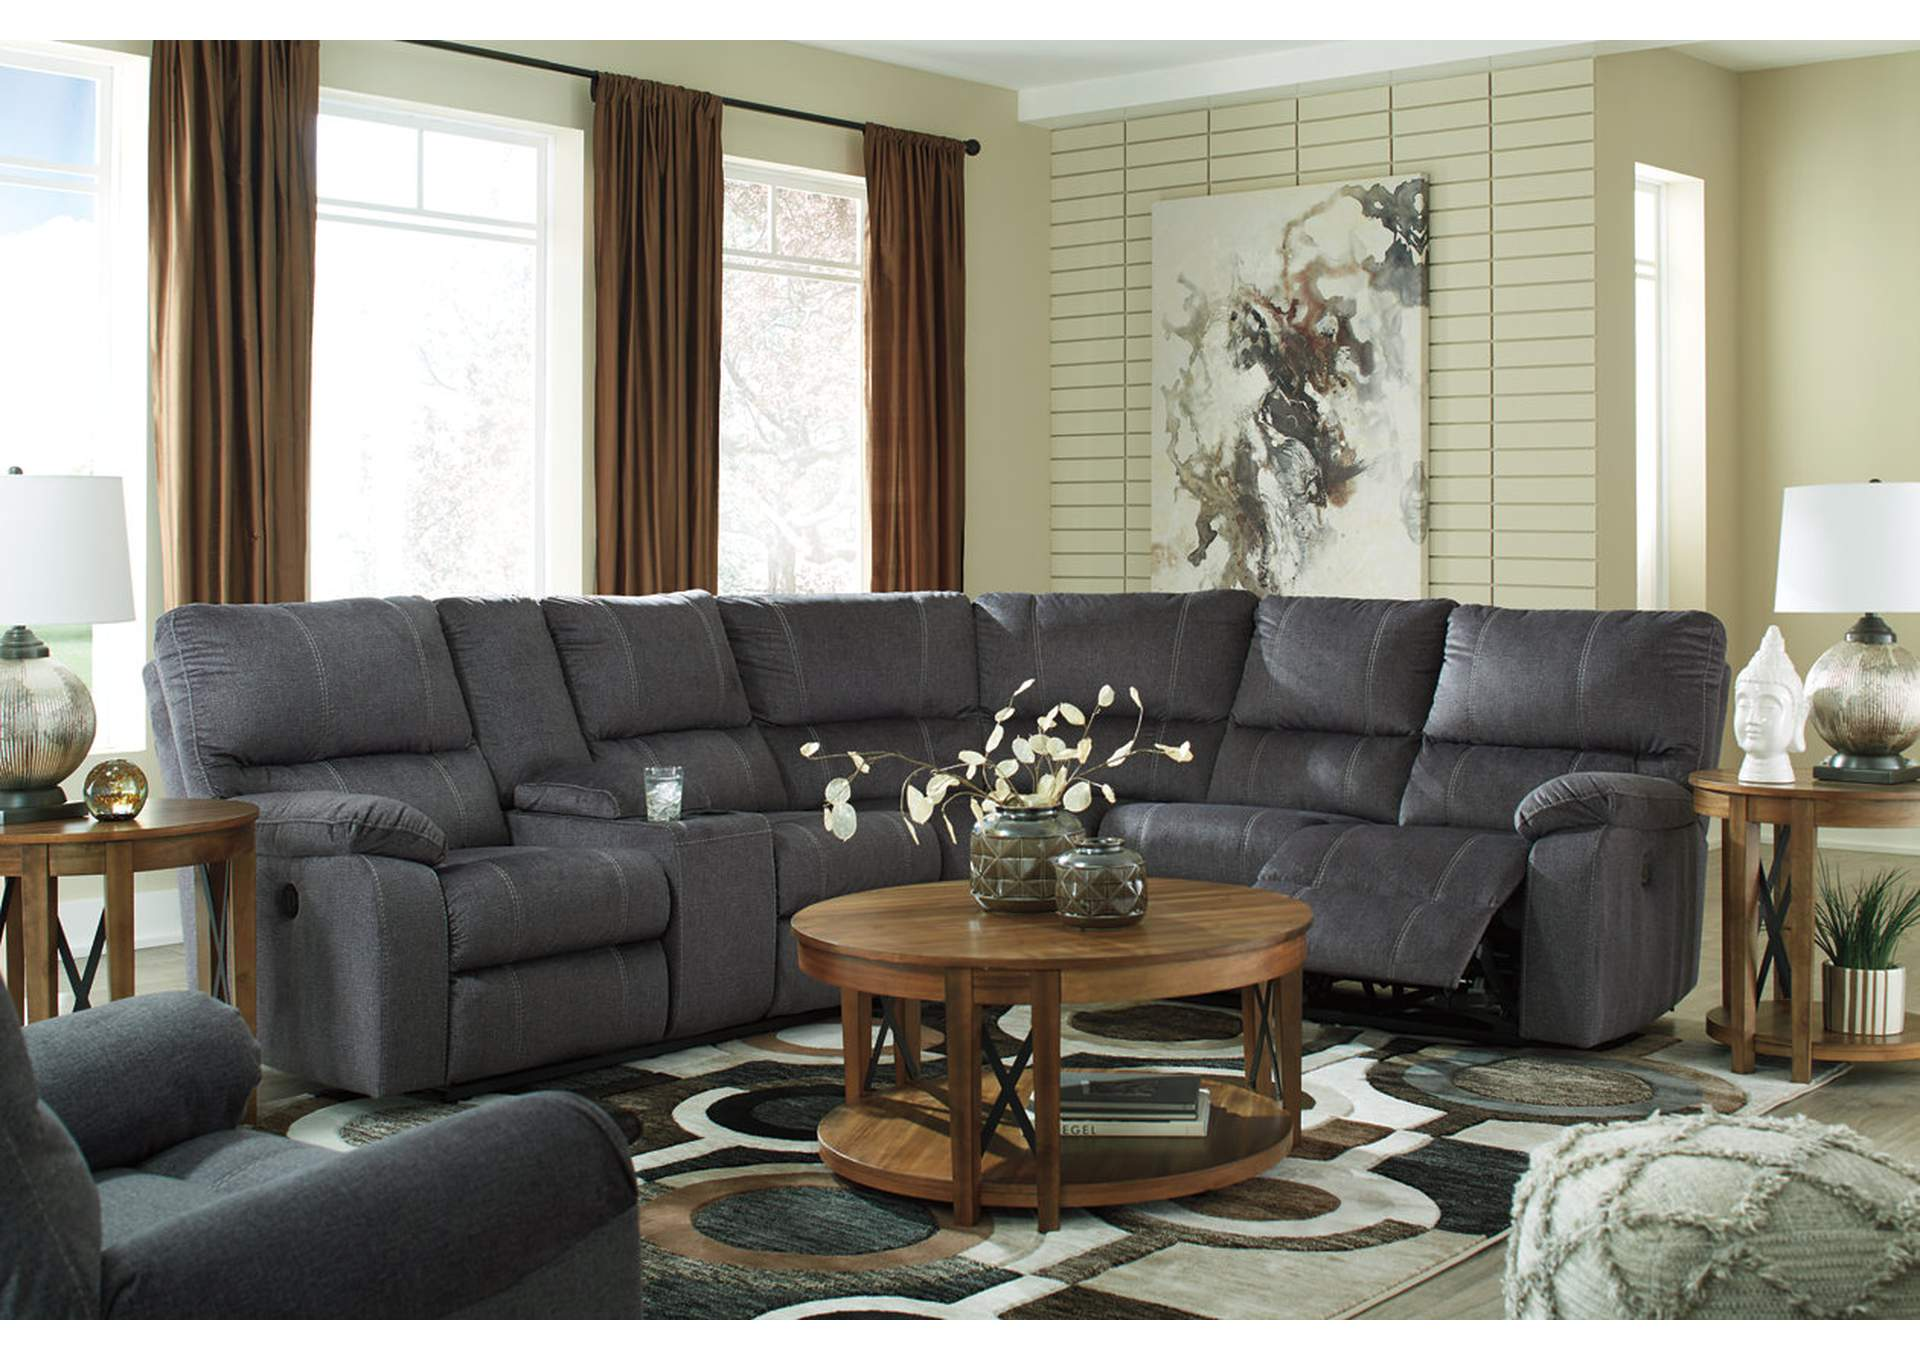 Urbino Charcoal Power Reclining Sectional w/Console,Signature Design By Ashley